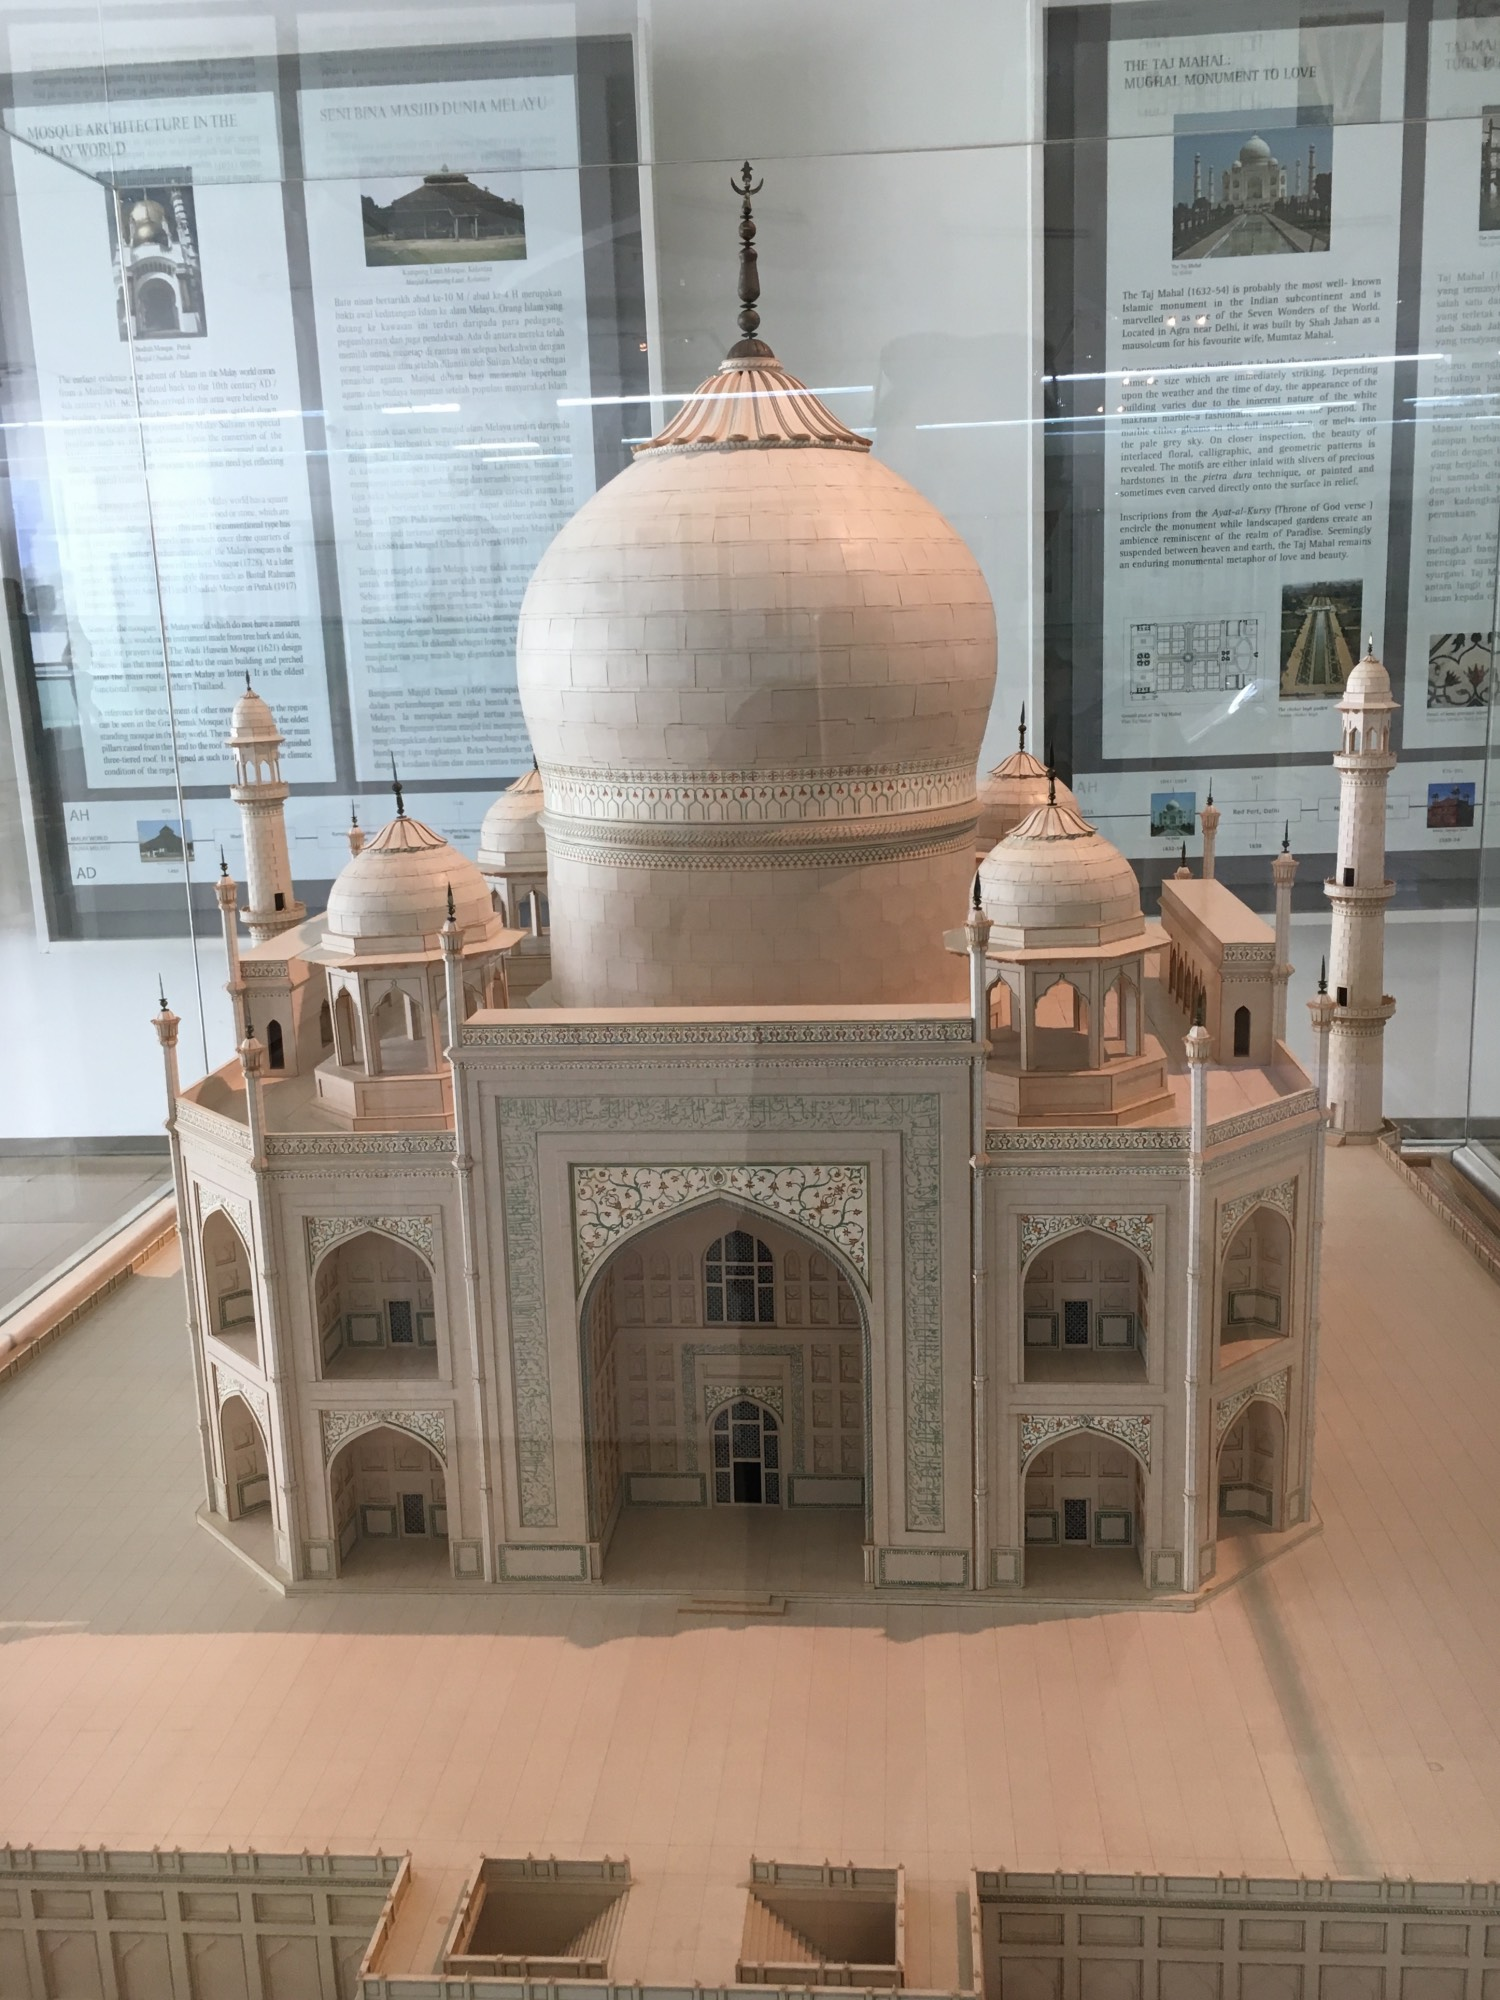 Mosque model at Islamic Art Museum in Kuala Lumpur. Wondering what to see in Kuala Lumpur in 2 days? Here's your perfect 2-day itinerary for KL. #kl #malaysia. #klitinerary #2daykualalumpur #kualalumpurguide #kualalumpurtraveling #kualalumpuritinerary #klitinerary